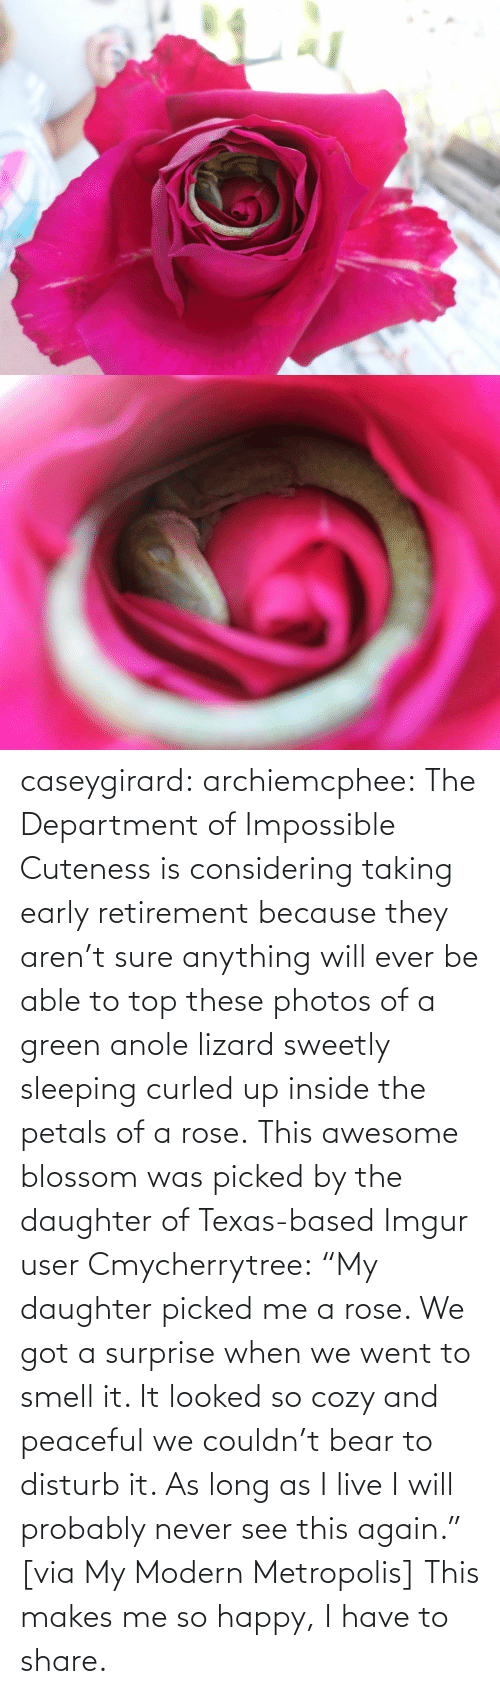 "Smell: caseygirard:  archiemcphee:   The Department of Impossible Cuteness is considering taking early retirement because they aren't sure anything will ever be able to top these photos of a green anole lizard sweetly sleeping curled up inside the petals of a rose. This awesome blossom was picked by the daughter of Texas-based Imgur user Cmycherrytree: ""My daughter picked me a rose. We got a surprise when we went to smell it. It looked so cozy and peaceful we couldn't bear to disturb it. As long as I live I will probably never see this again."" [via My Modern Metropolis]   This makes me so happy, I have to share."